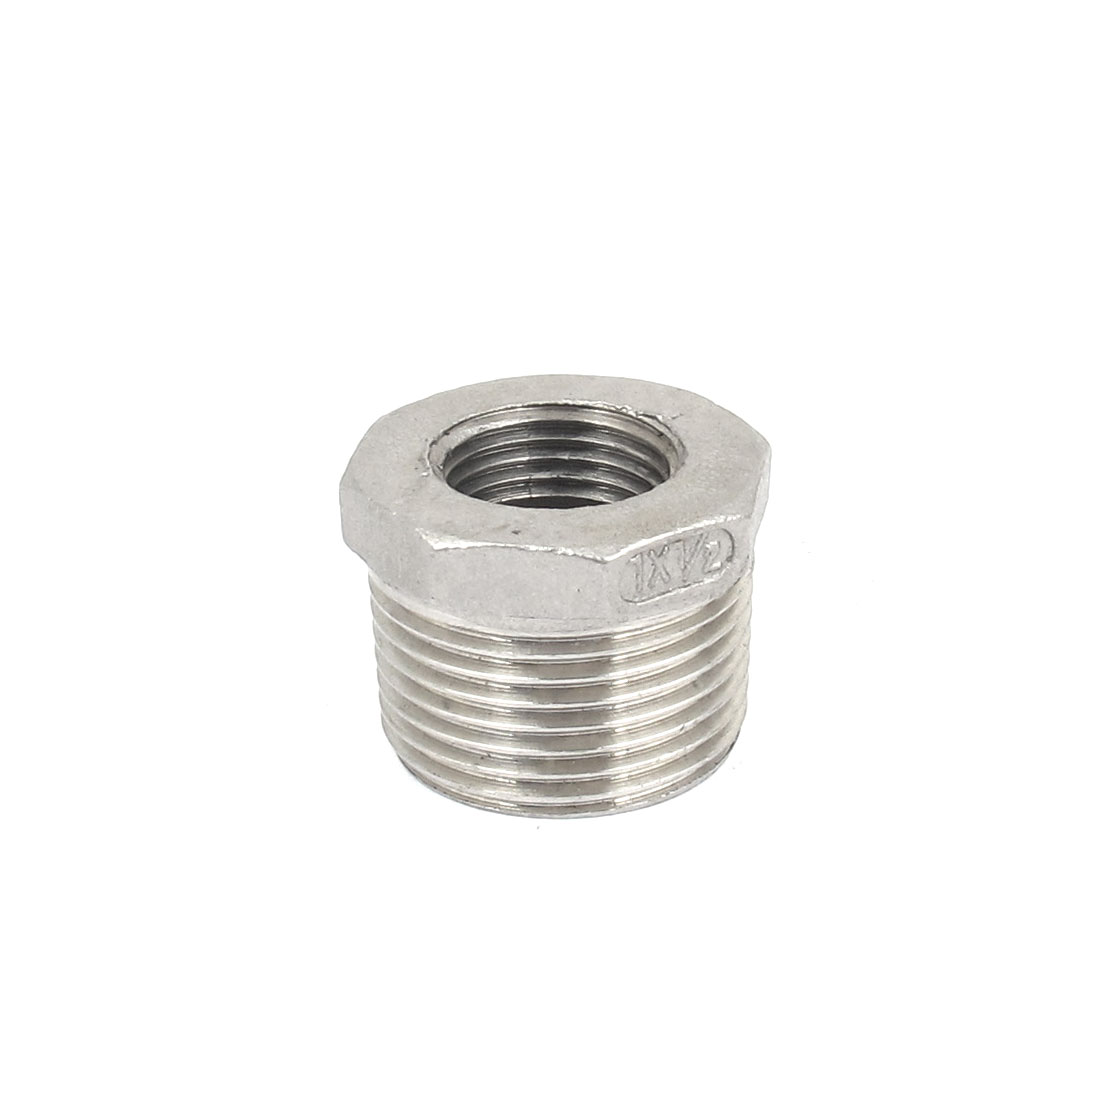 1 BSP Male to 1/2 BSP Female Thread Octagon Head Bushing Fitting for Pipeline